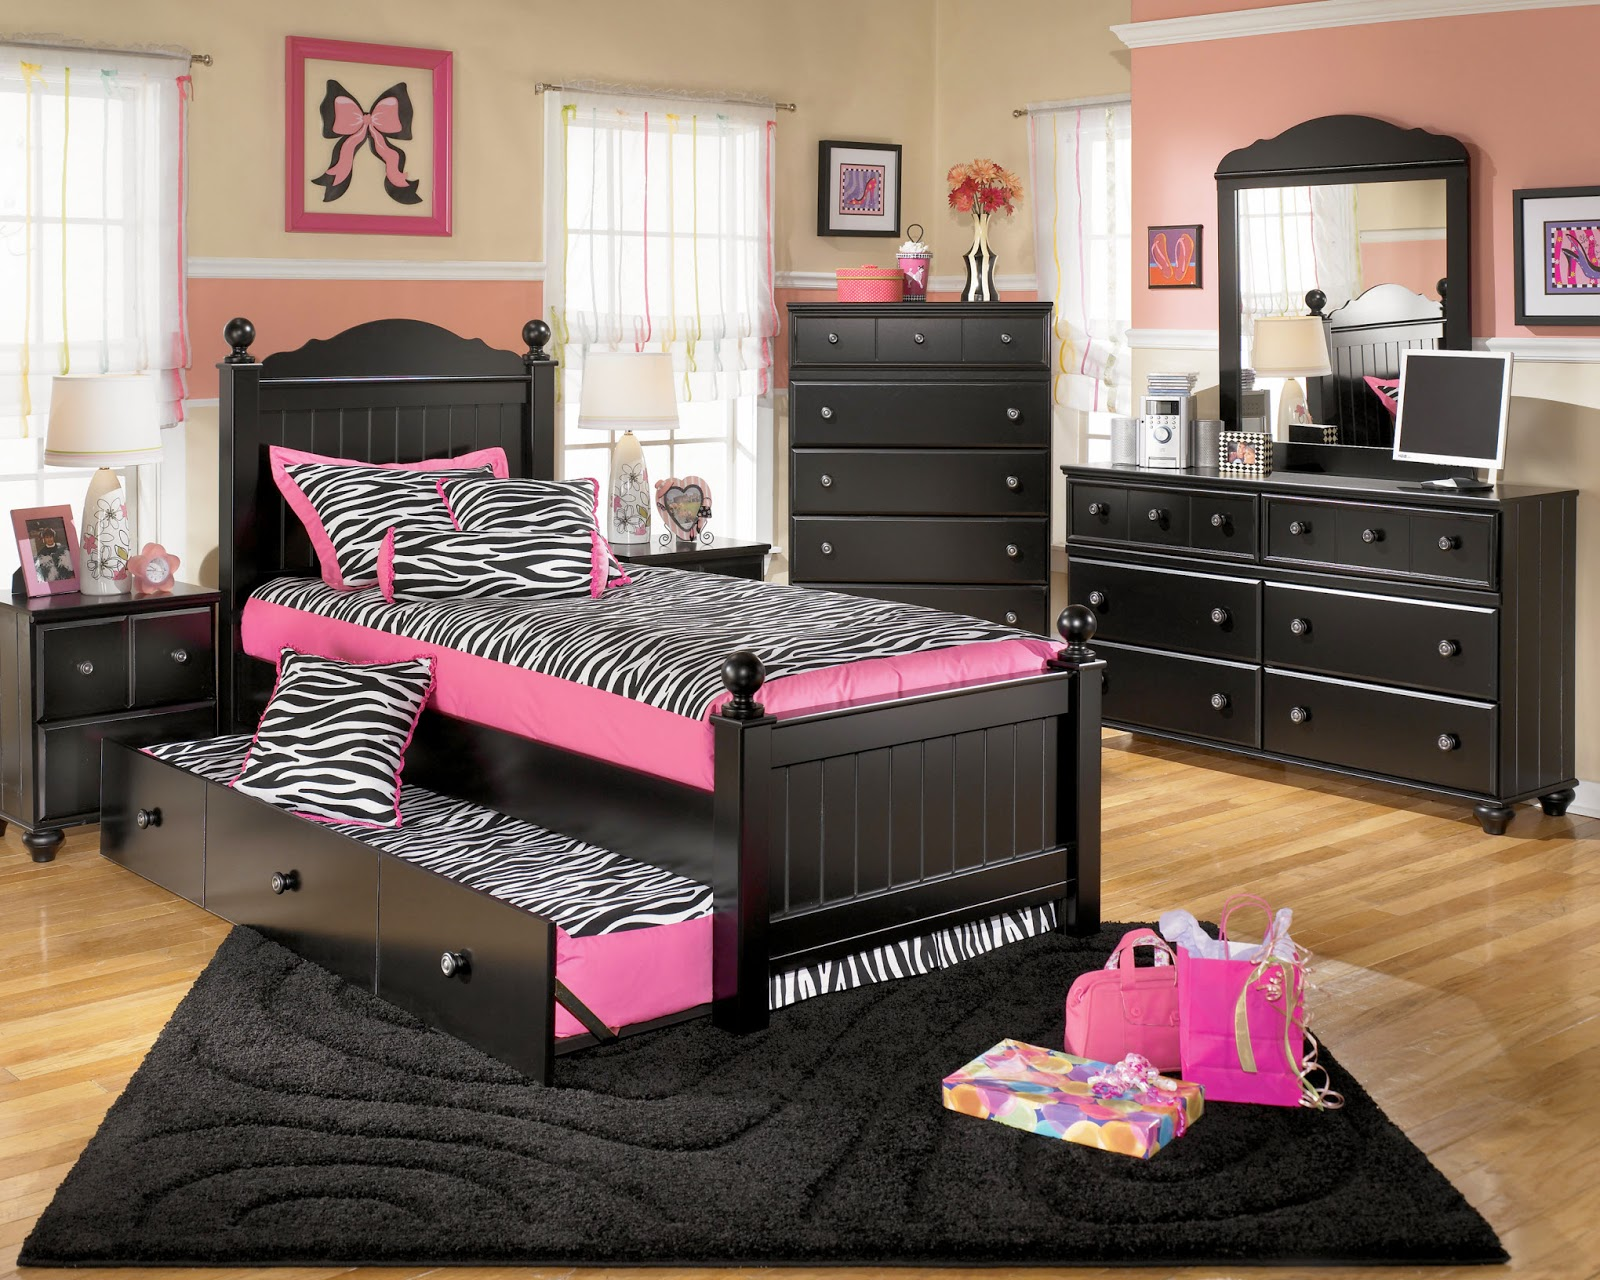 Bedroom for kids girls - Kids Bedroom Furniture Sets For Girls